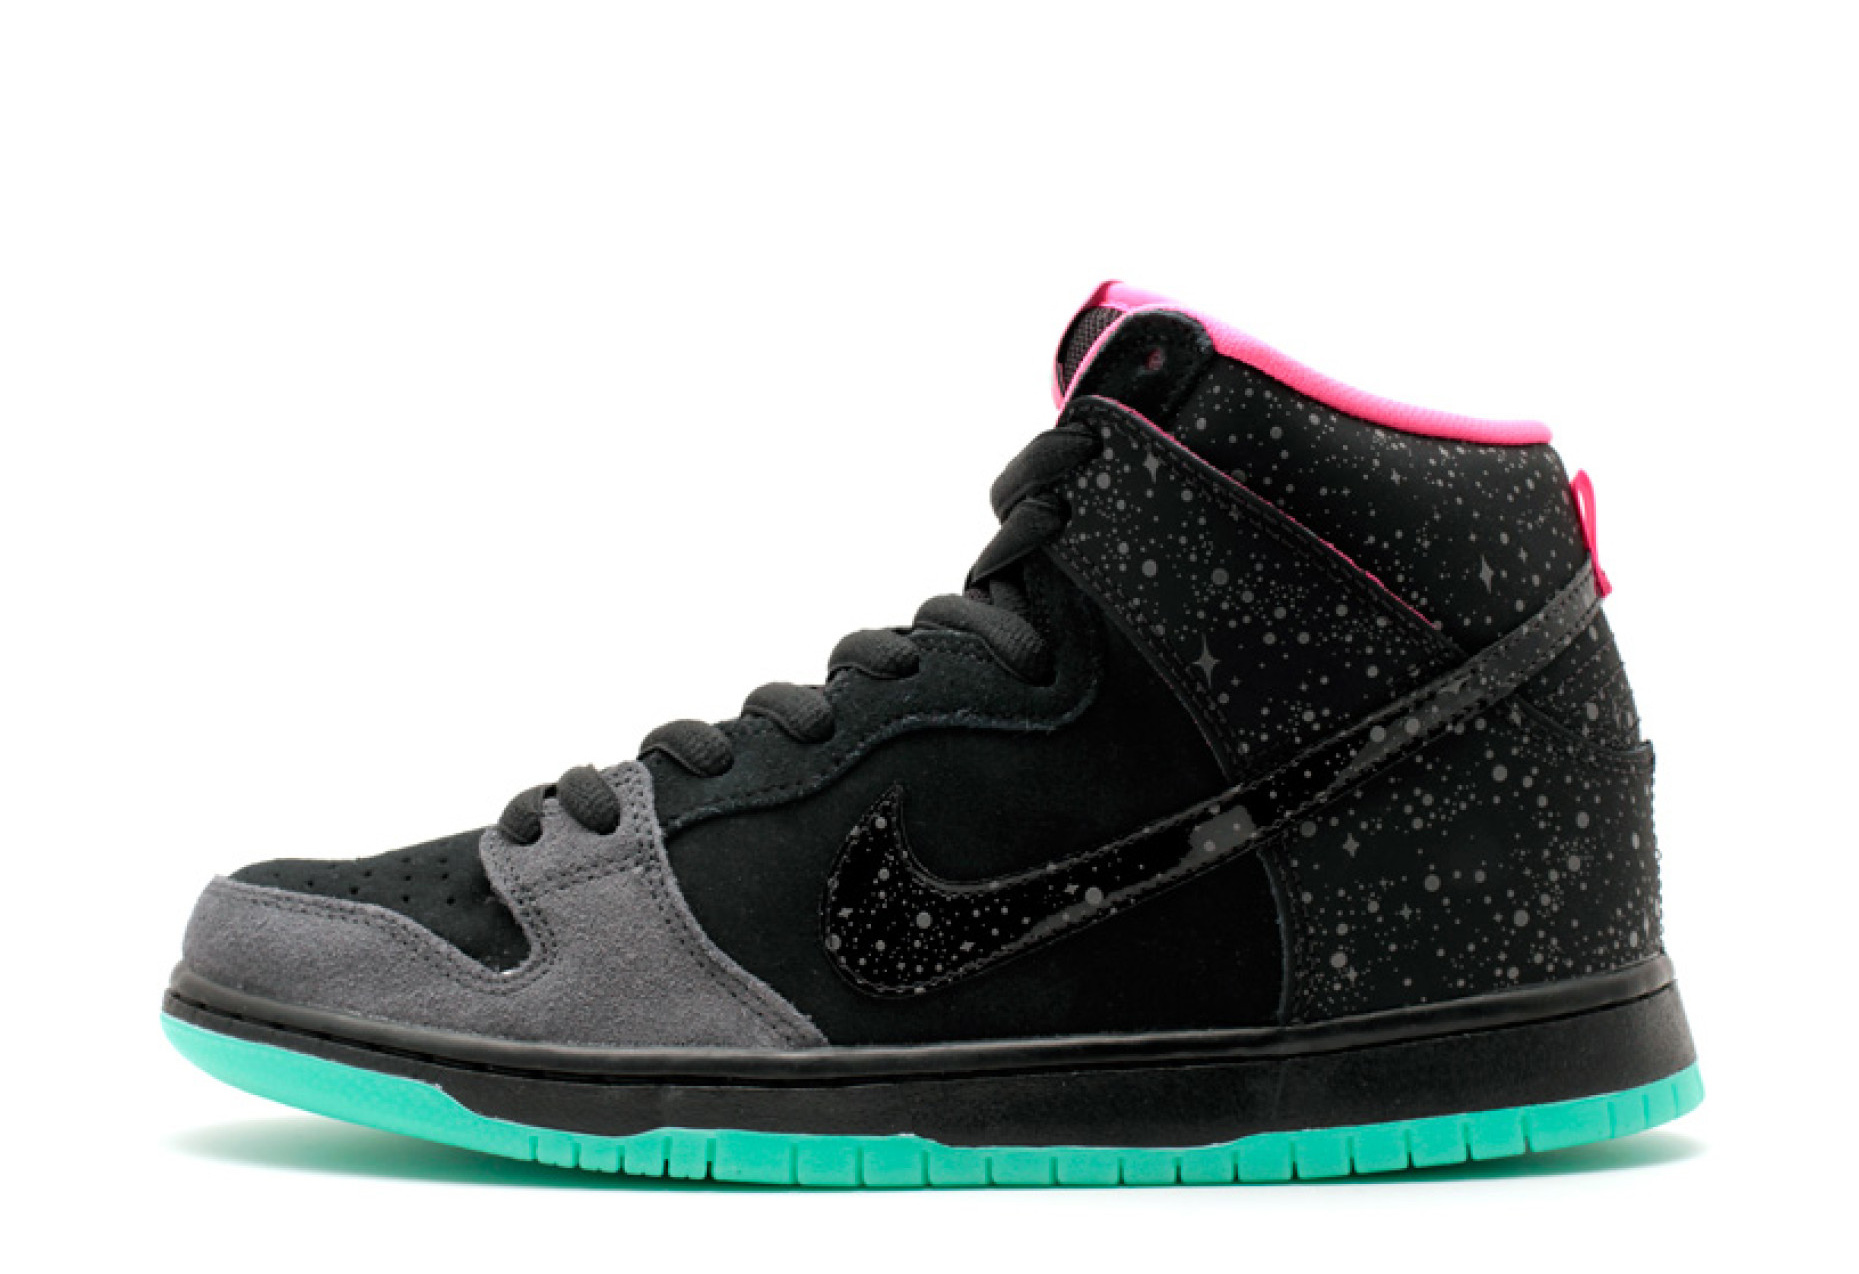 Dunk High Premium SB 'Northern Lights' 313171 063